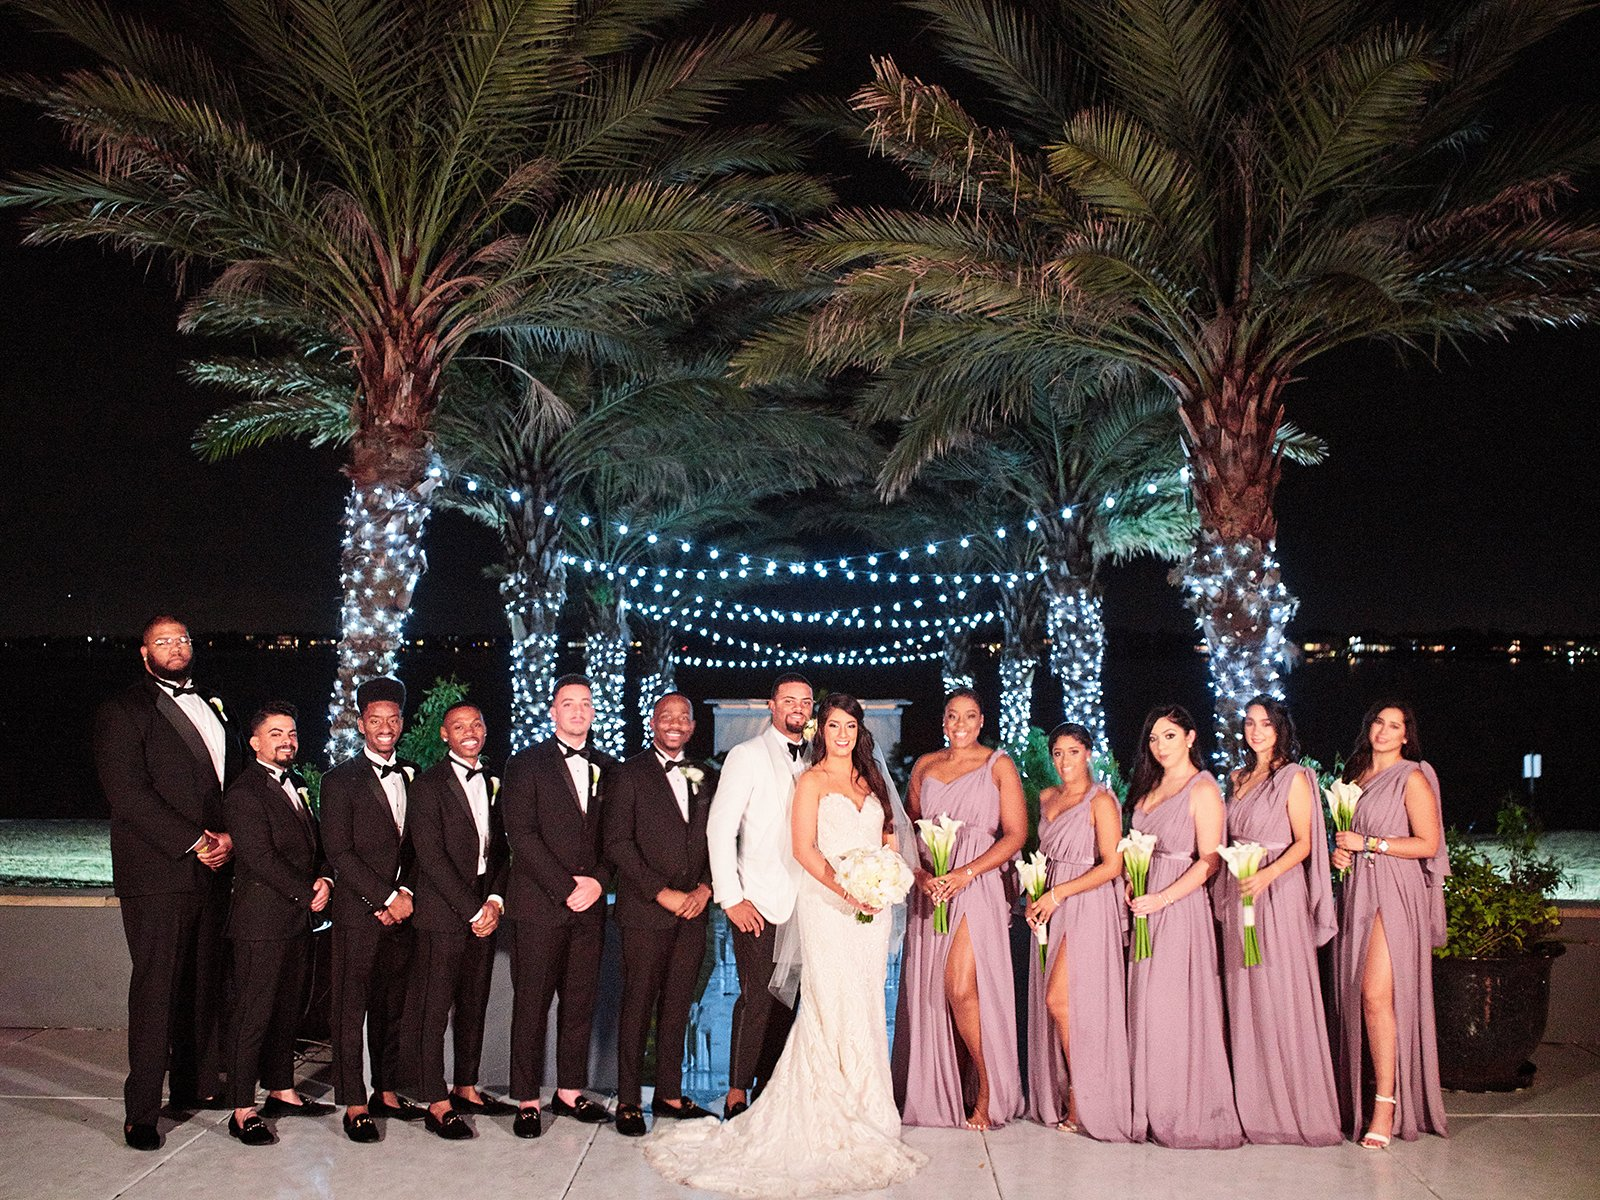 wedding party - rose bridesmaids dresses - nighttime